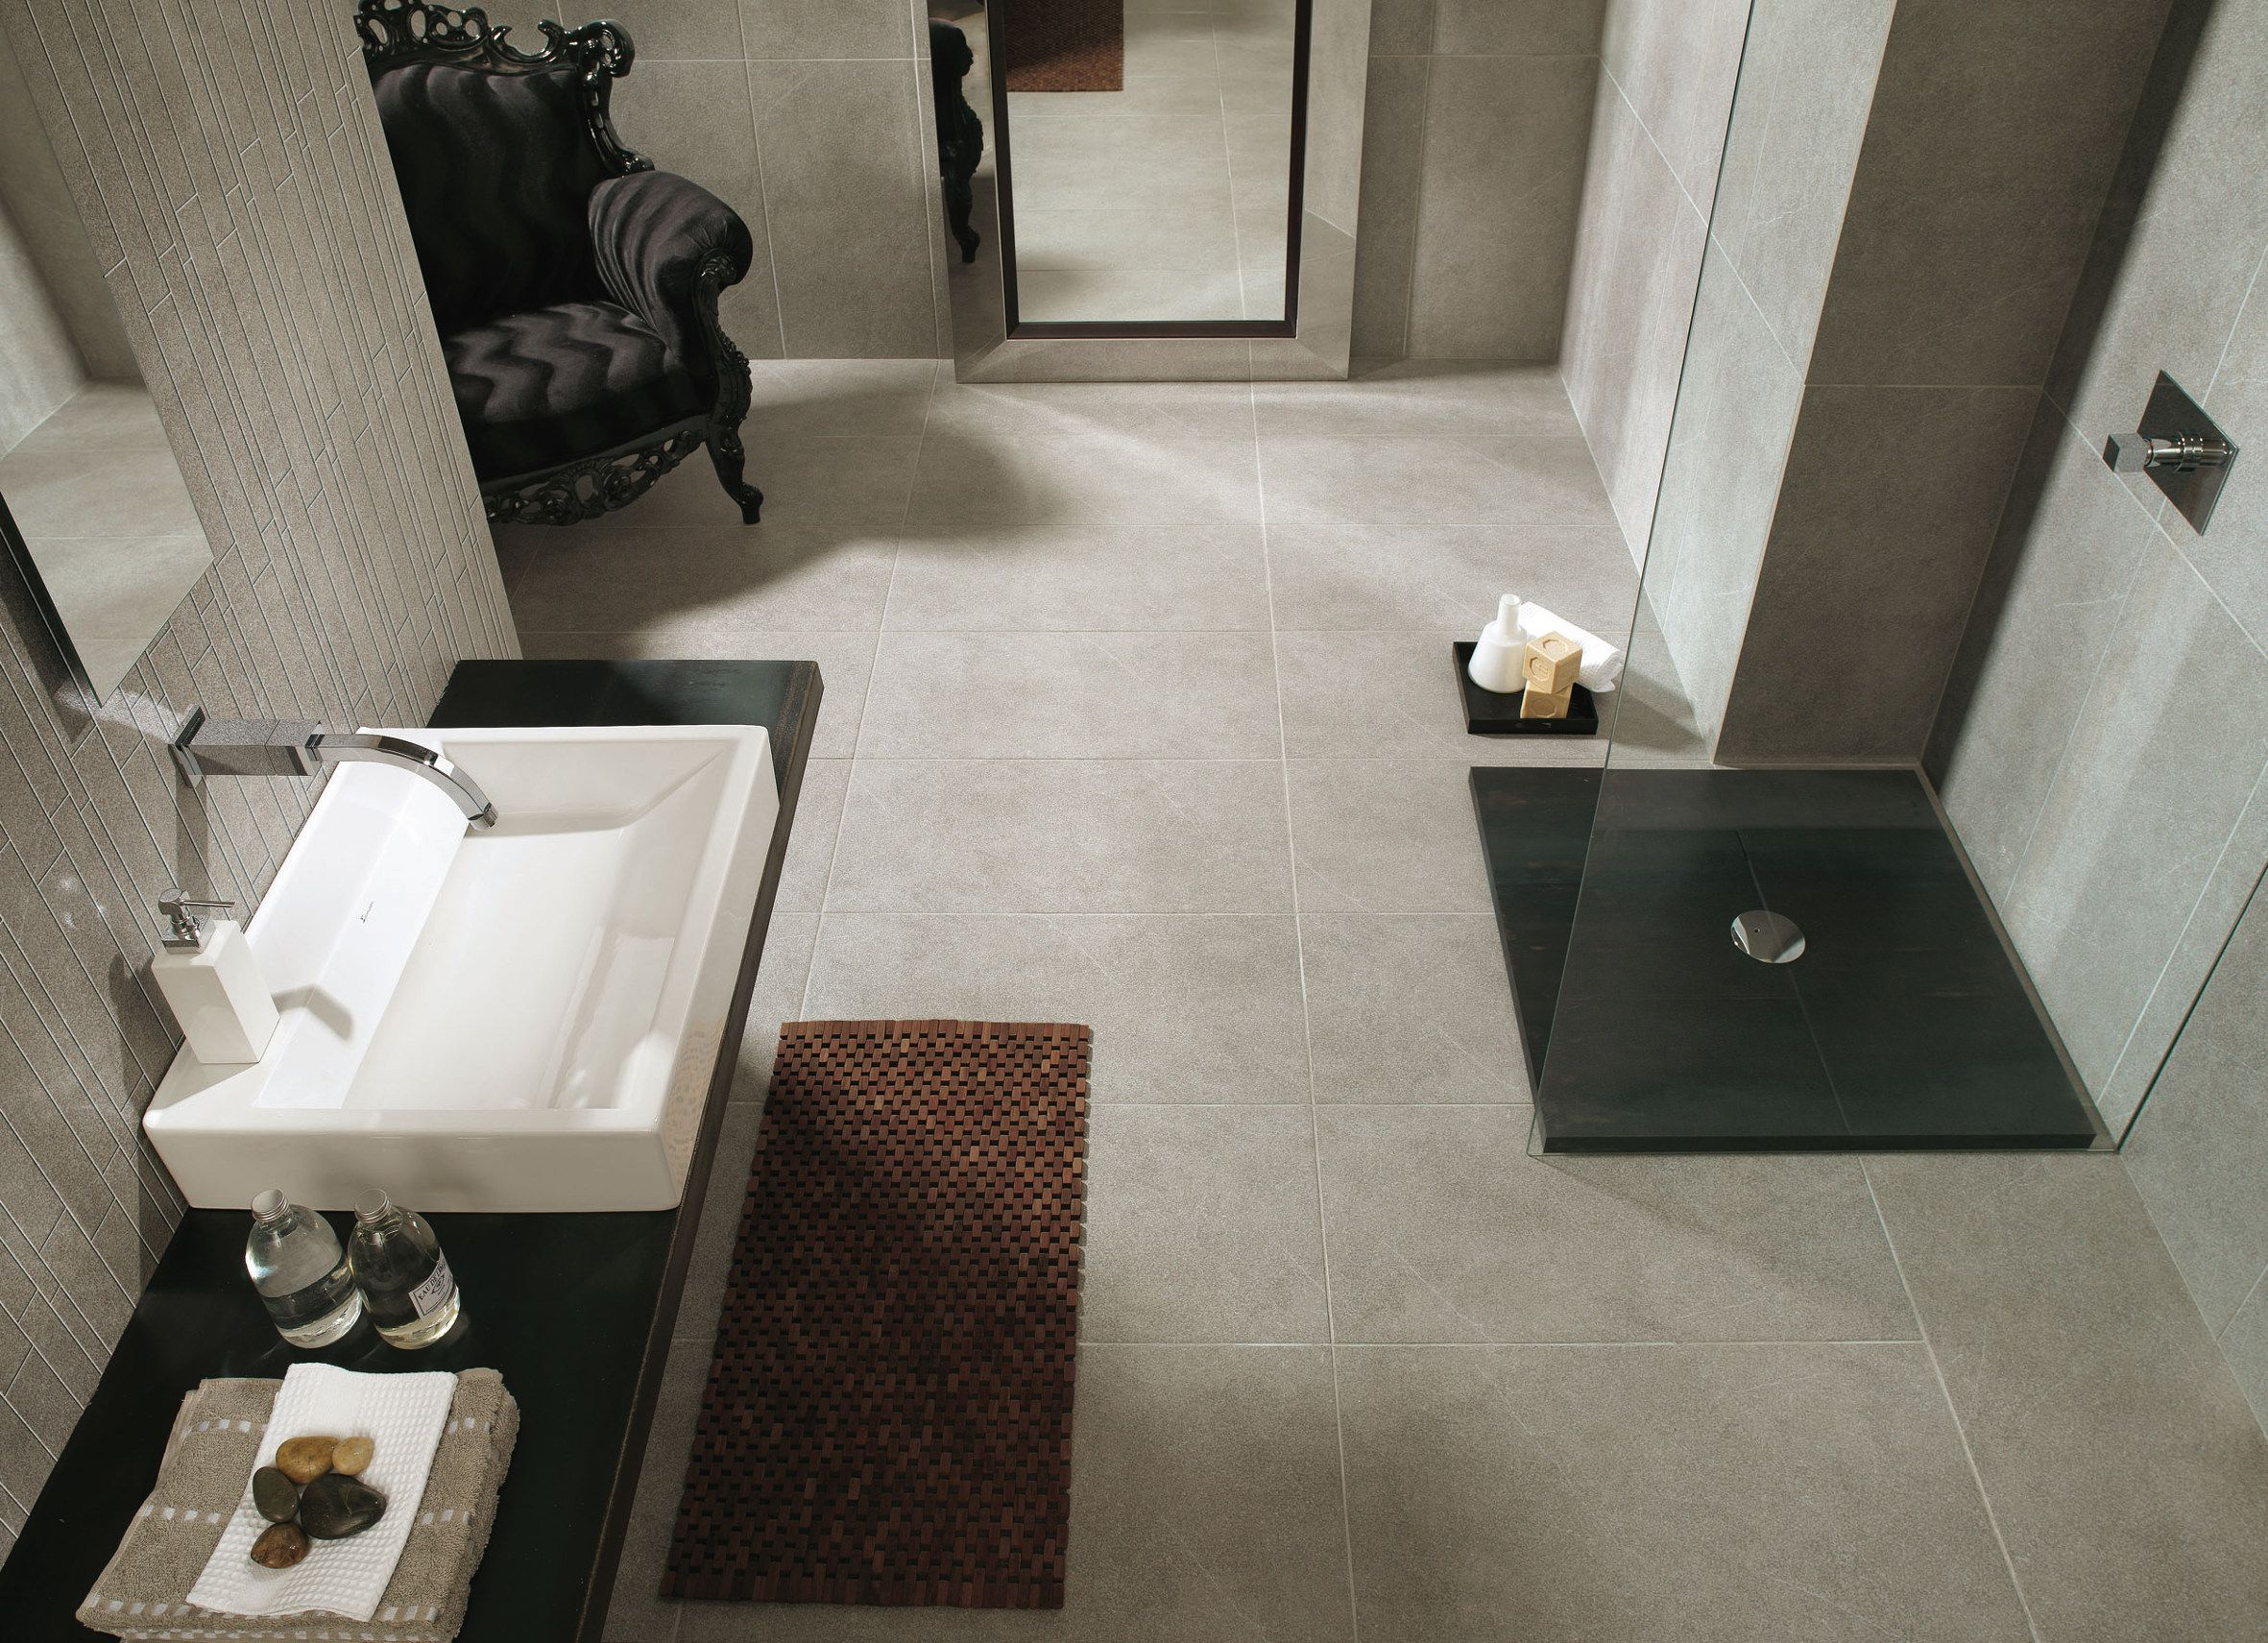 Milestone fra hgans legg merke til trendy speil n er smale explore floor tile suppliers and more dailygadgetfo Choice Image